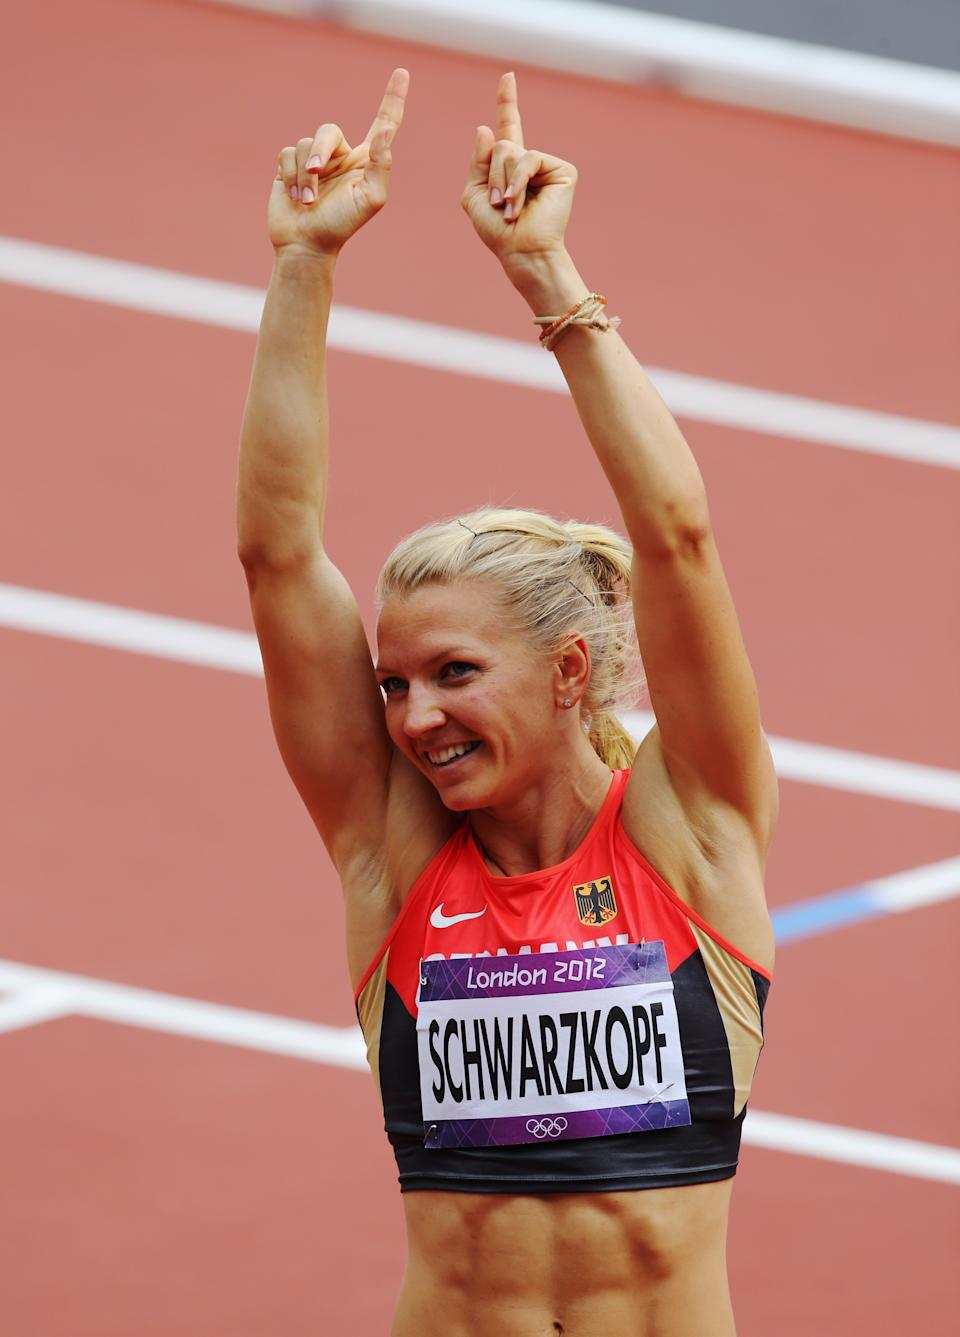 LONDON, ENGLAND - AUGUST 03: Lilli Schwarzkopf of Germany celebrates after competing in the Women's Heptathlon 100m Hurdles Heat 1 on Day 7 of the London 2012 Olympic Games at Olympic Stadium on August 3, 2012 in London, England. (Photo by Streeter Lecka/Getty Images)